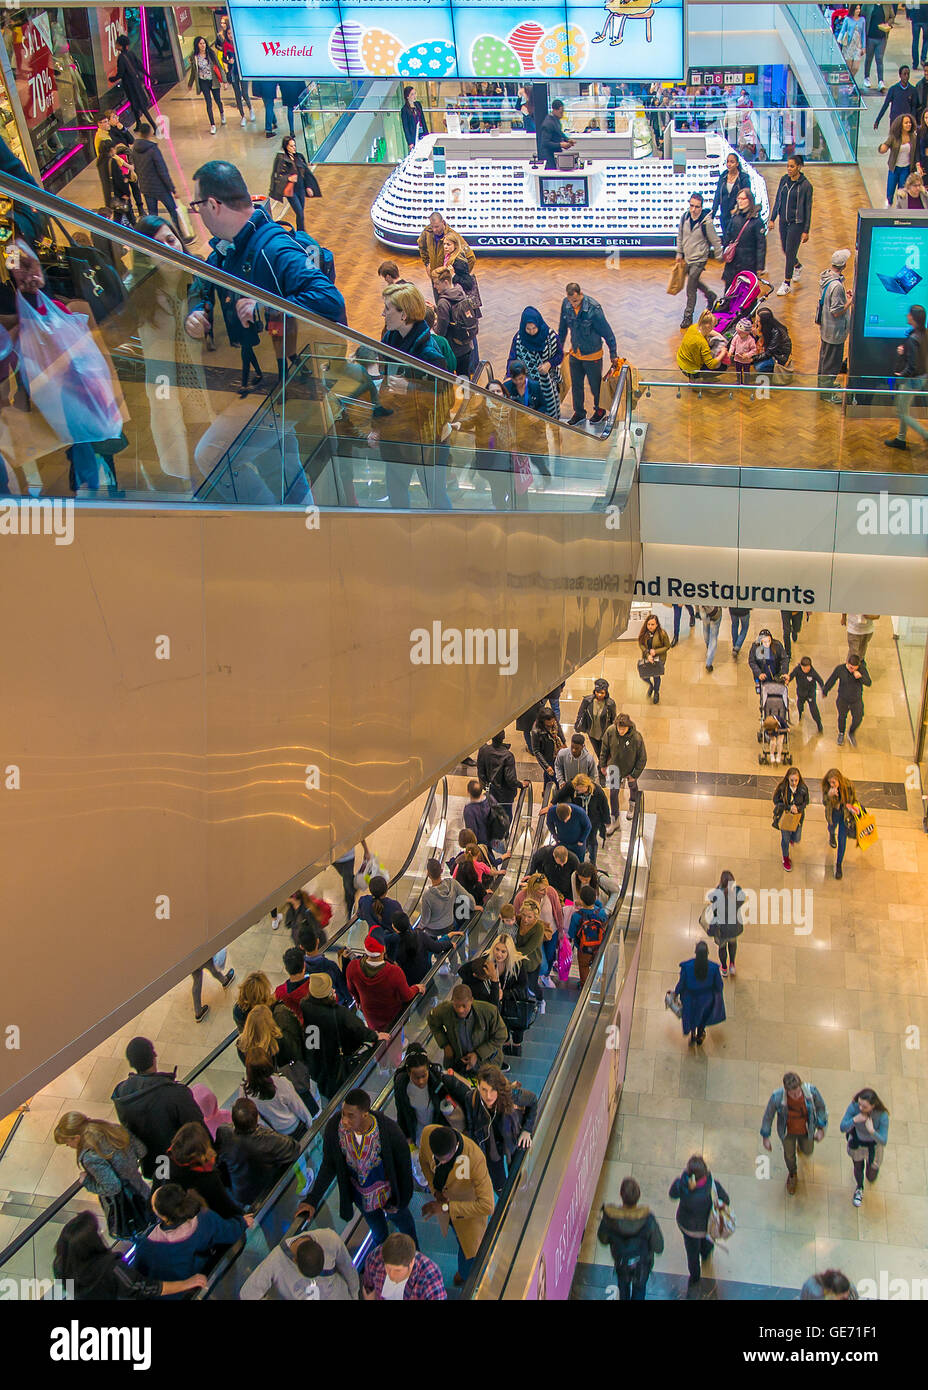 Busy Escalator Westfield Shopping Centre Stratford London UK Stock Photo